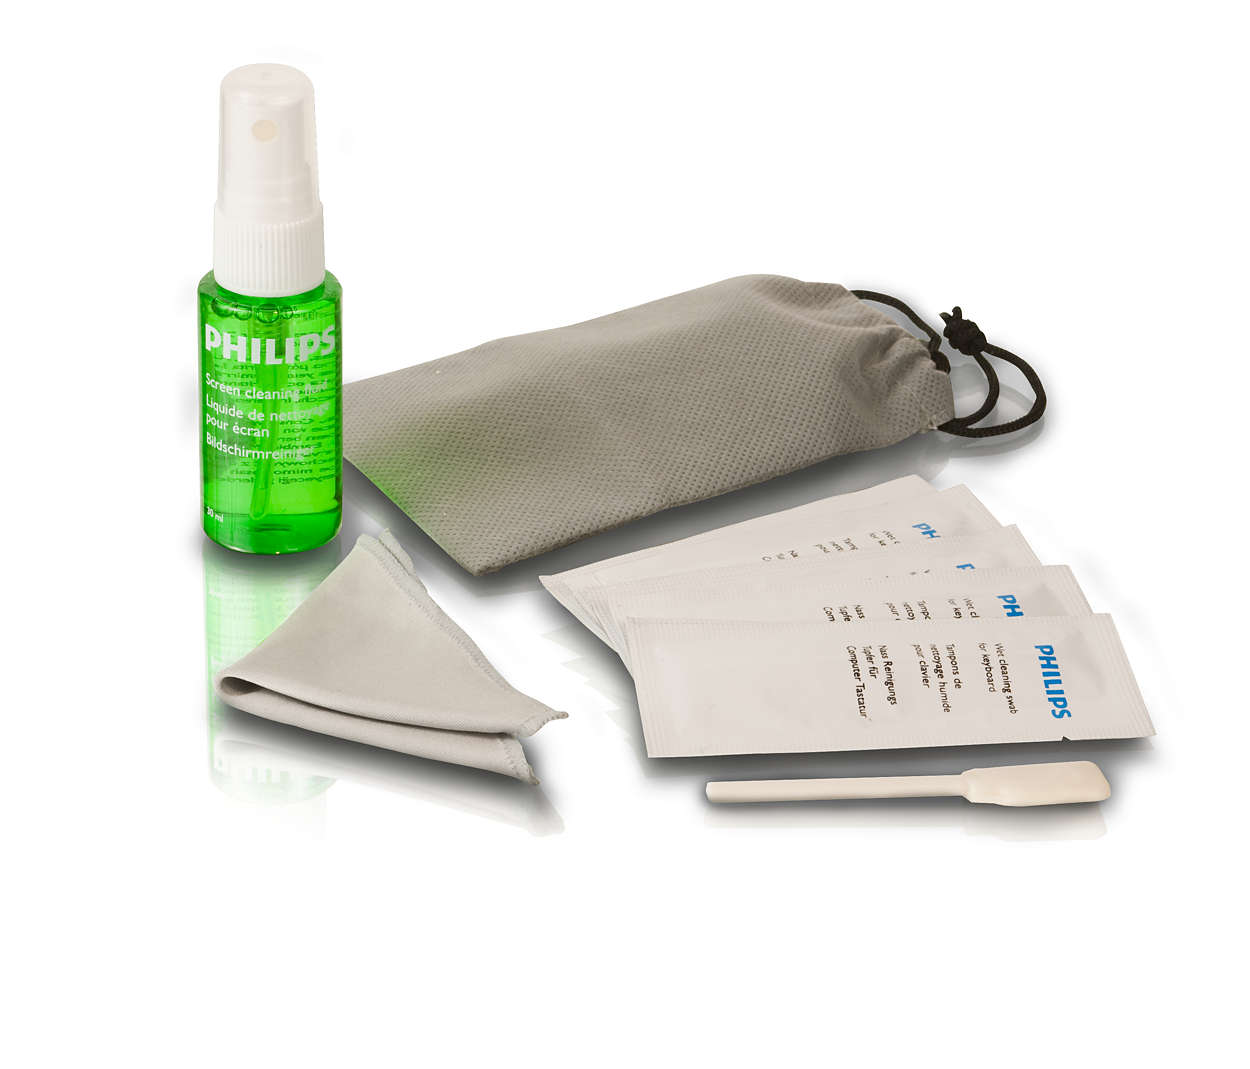 Safely clean your laptop and mobile device screens